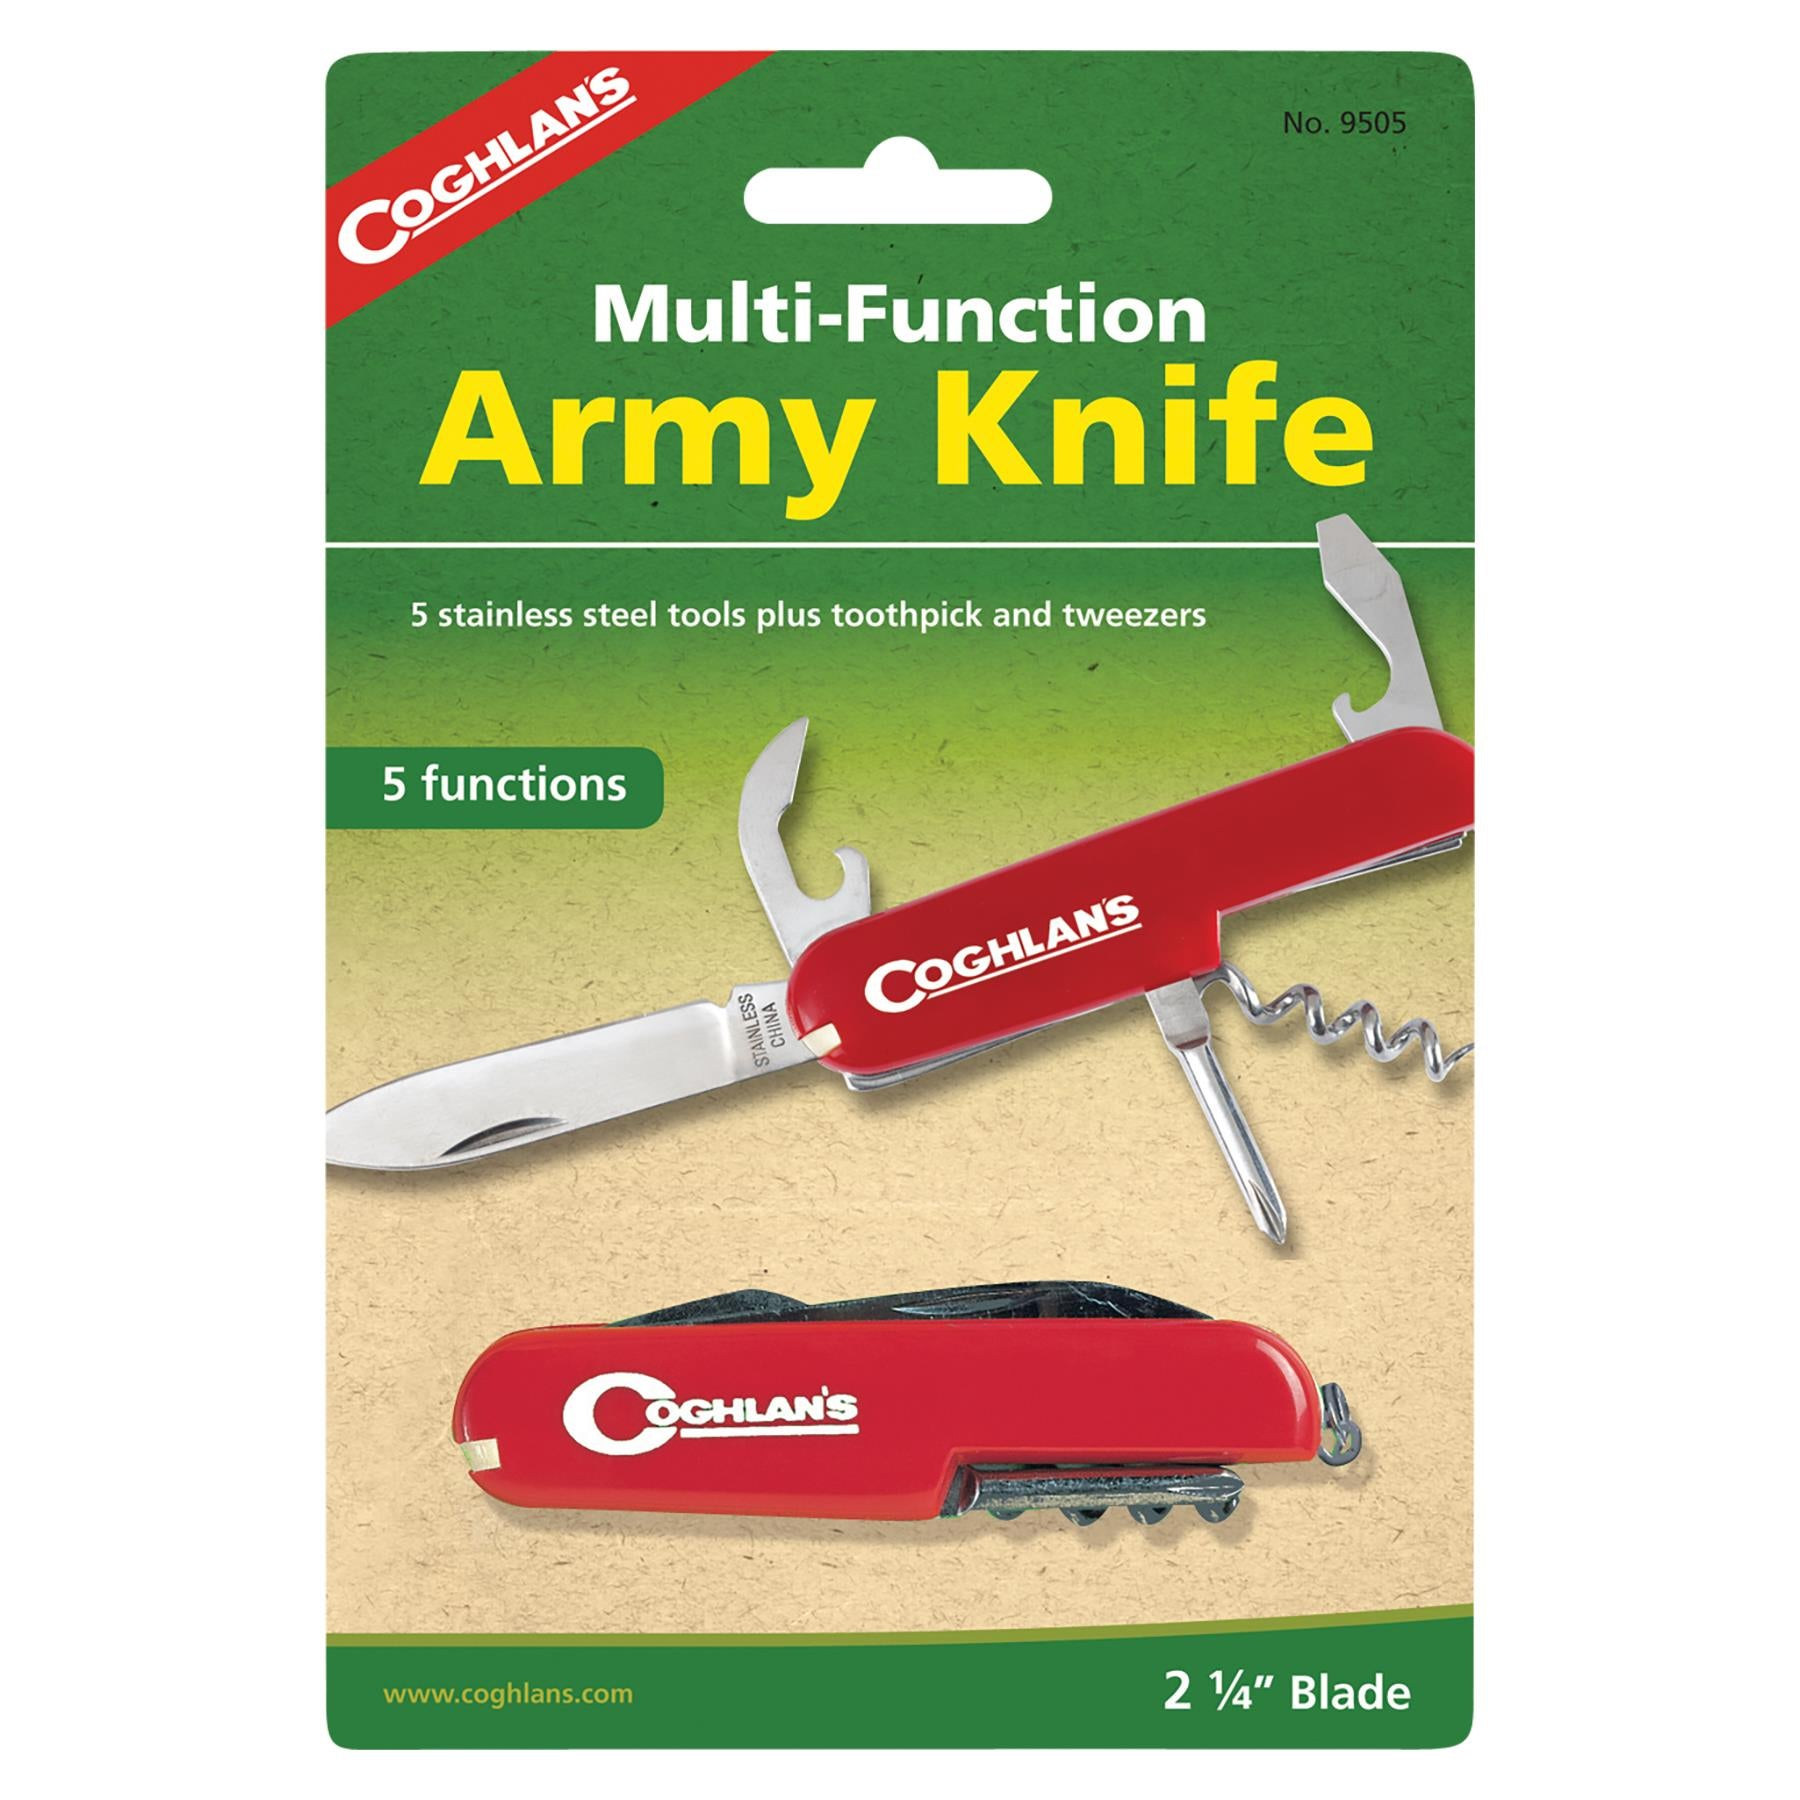 Army Knife (5 function)